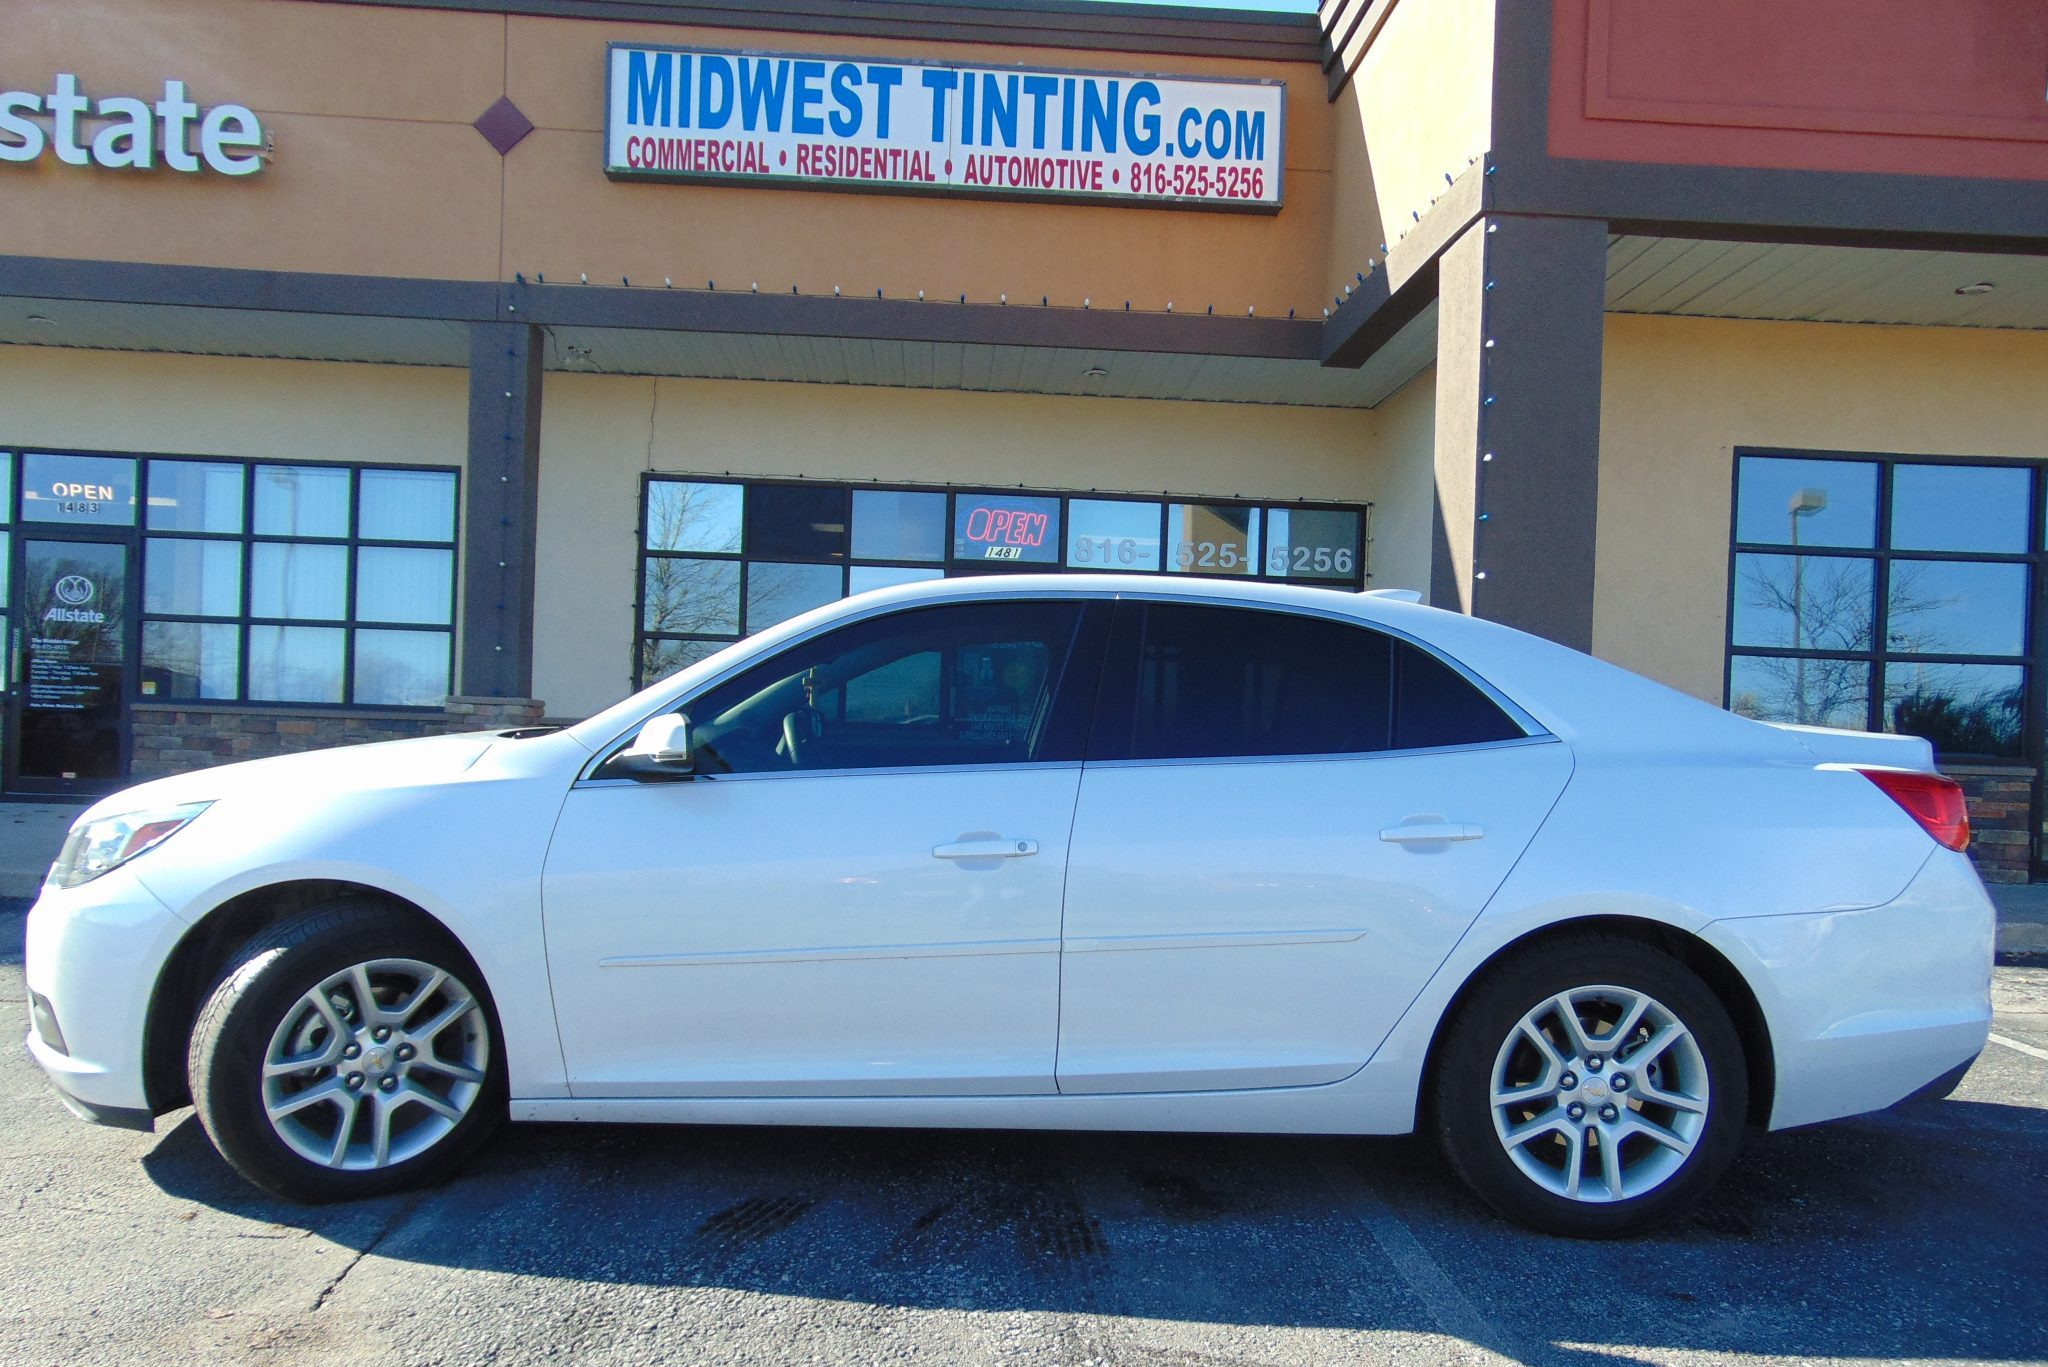 Window tint service kansas city midwest tinting for Window tinting